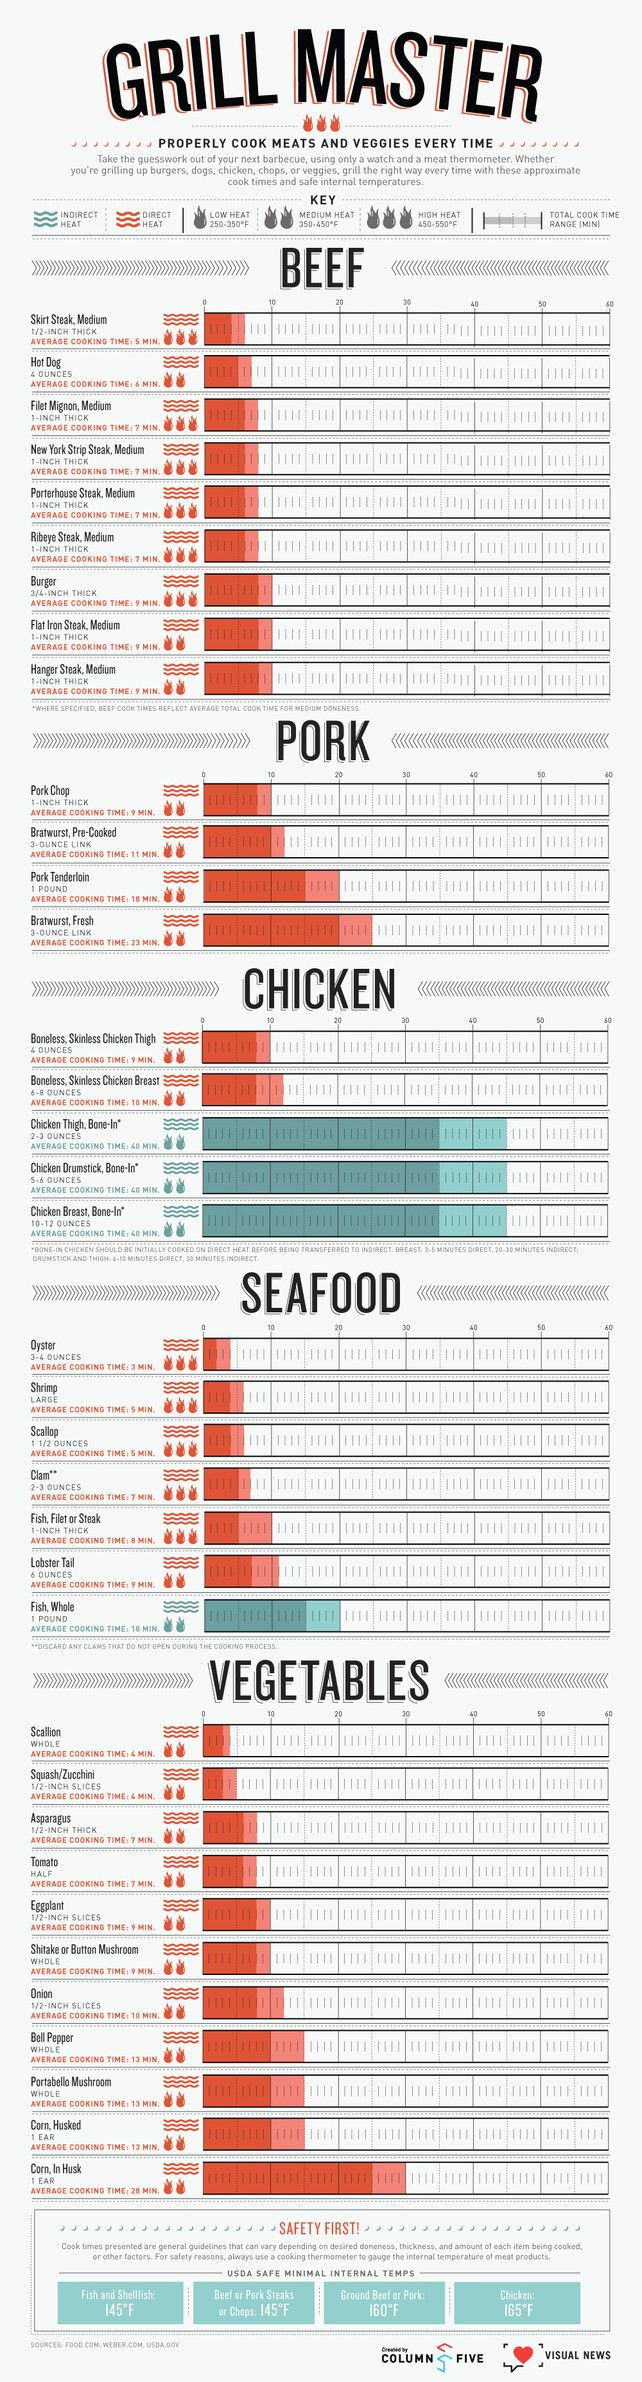 A Cheat Sheet For Grilling Out. Honing Basic Recipes http://pinterest.com/wineinajug/honing-basic-recipes/